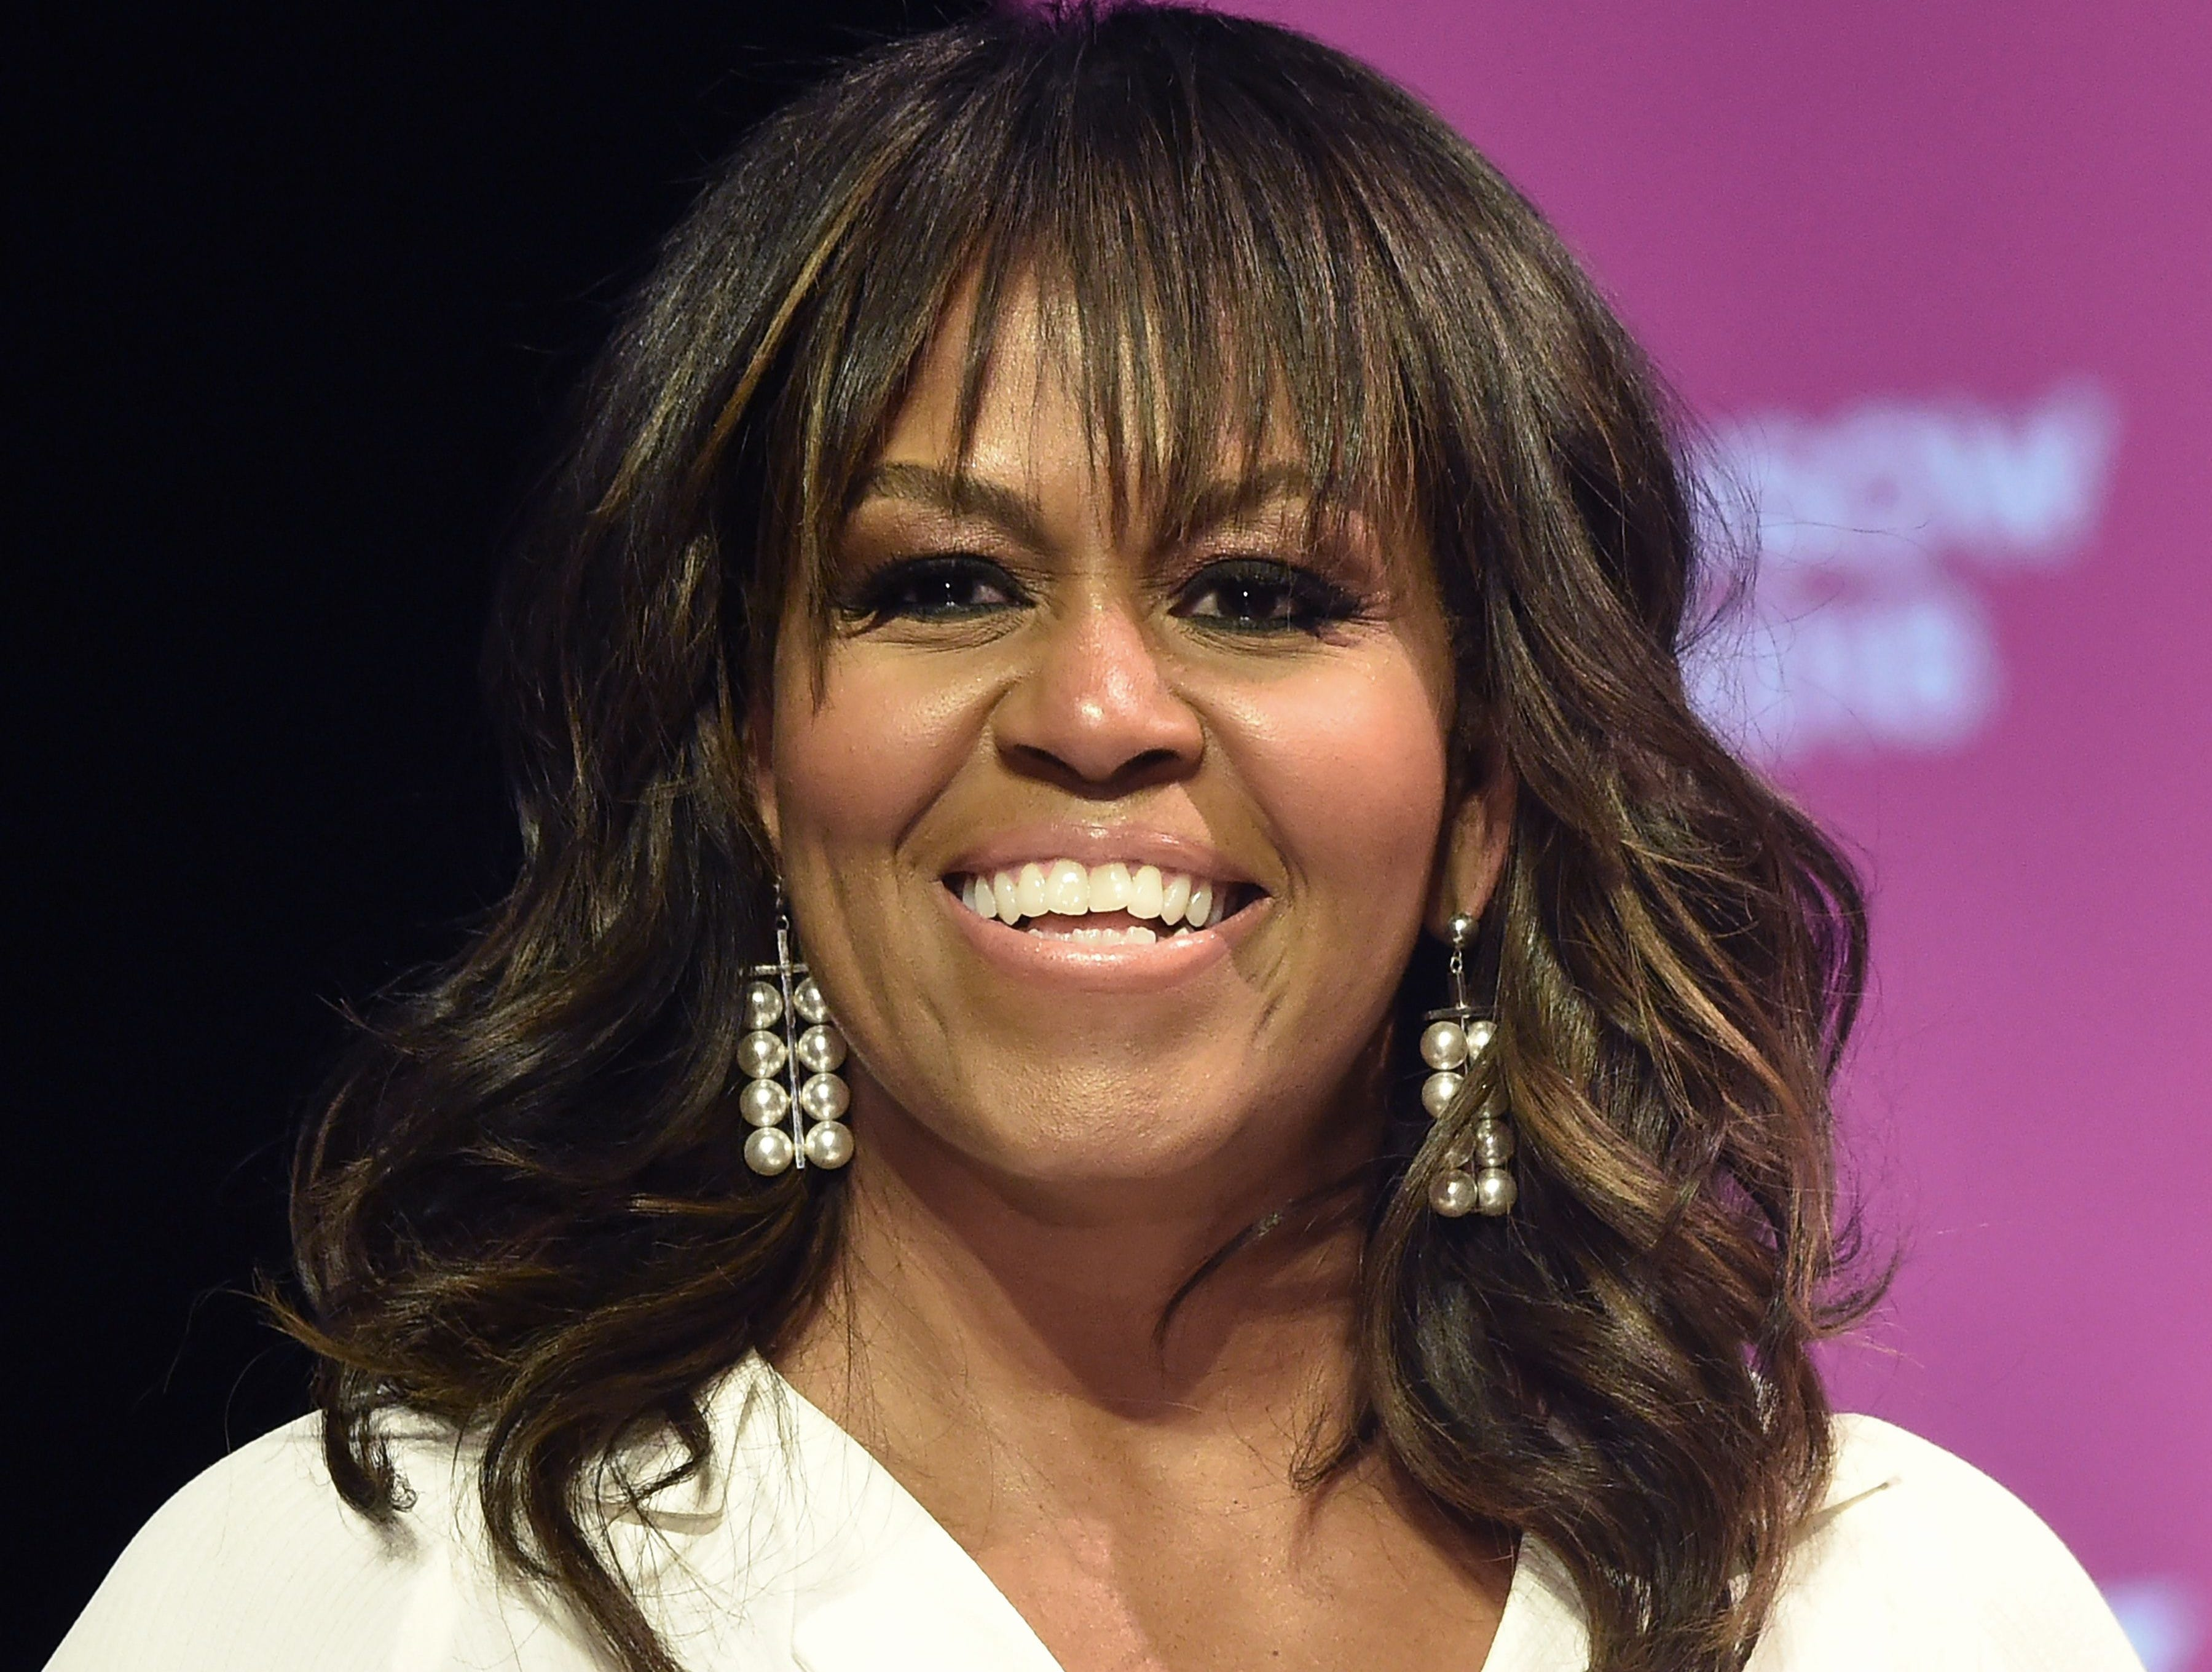 'Becoming' Michelle Obama: Even the queen's shoes hurt, and 5 more things we didn't know